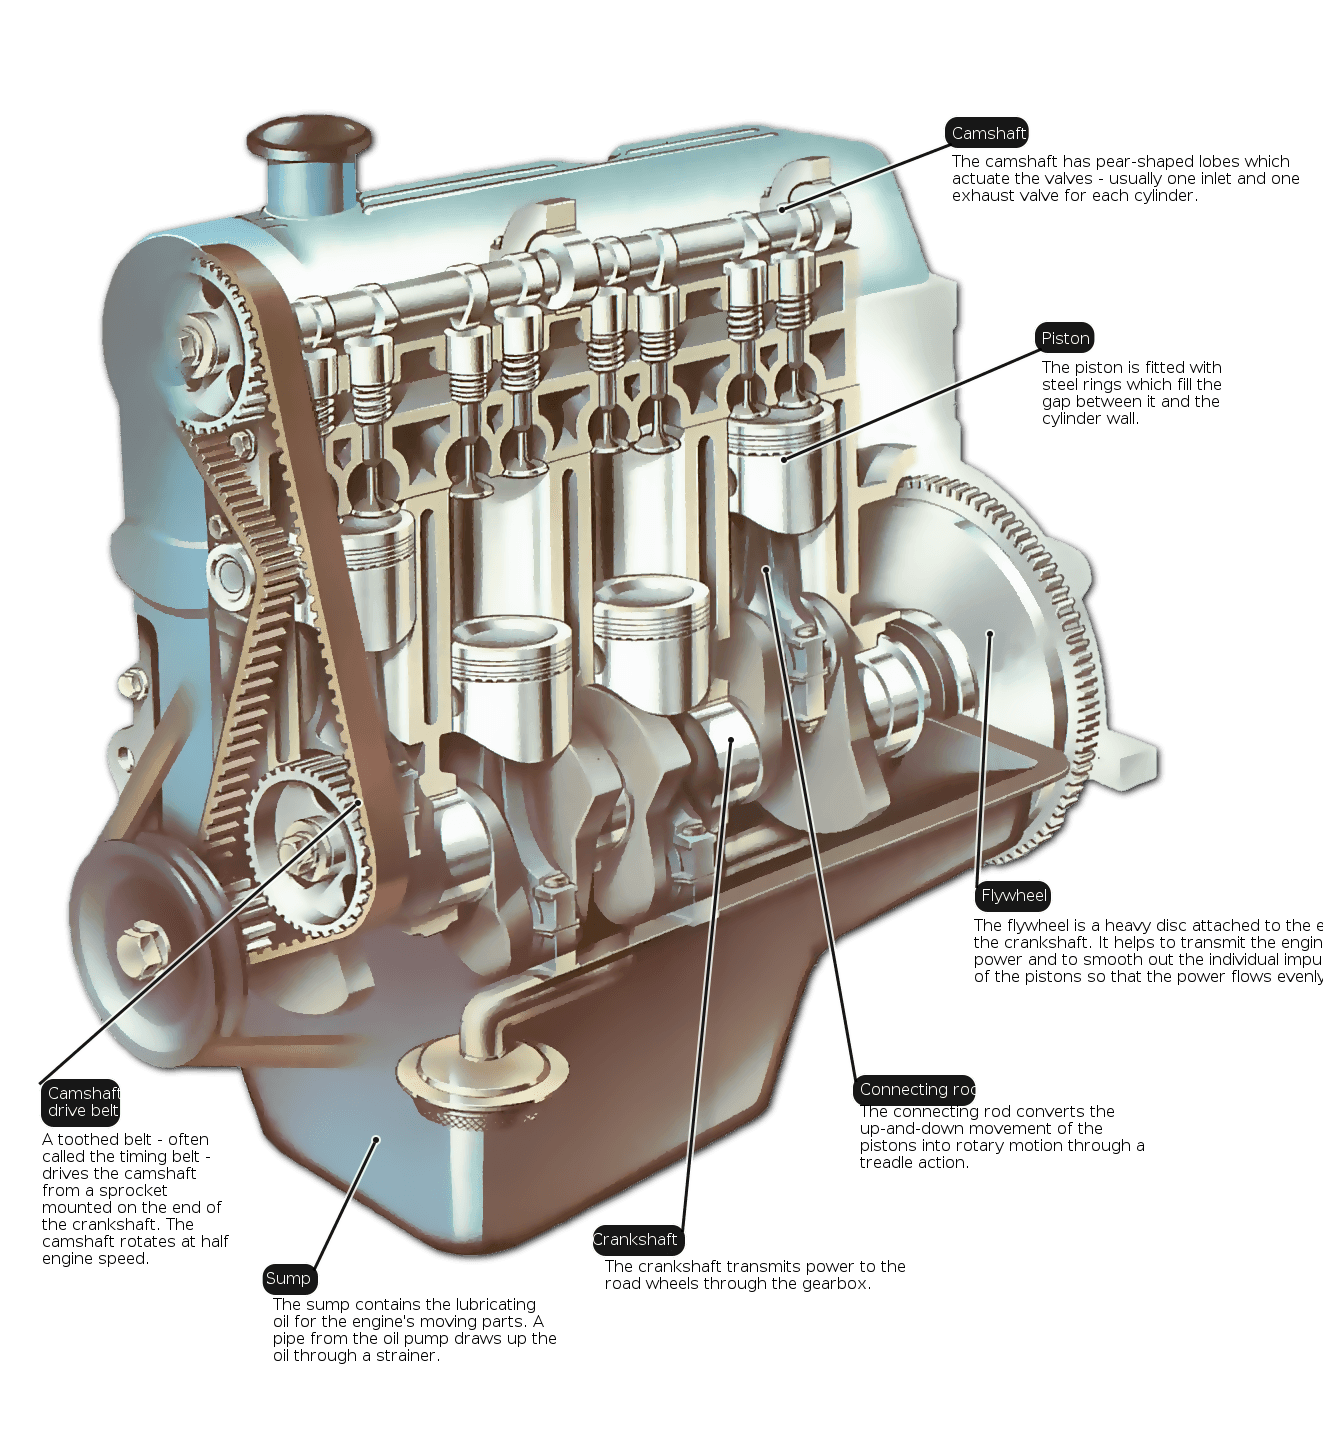 Types Of Motorcycle Engines: Engine Trouble? Get An Overview Of How A Car Engine Uses A